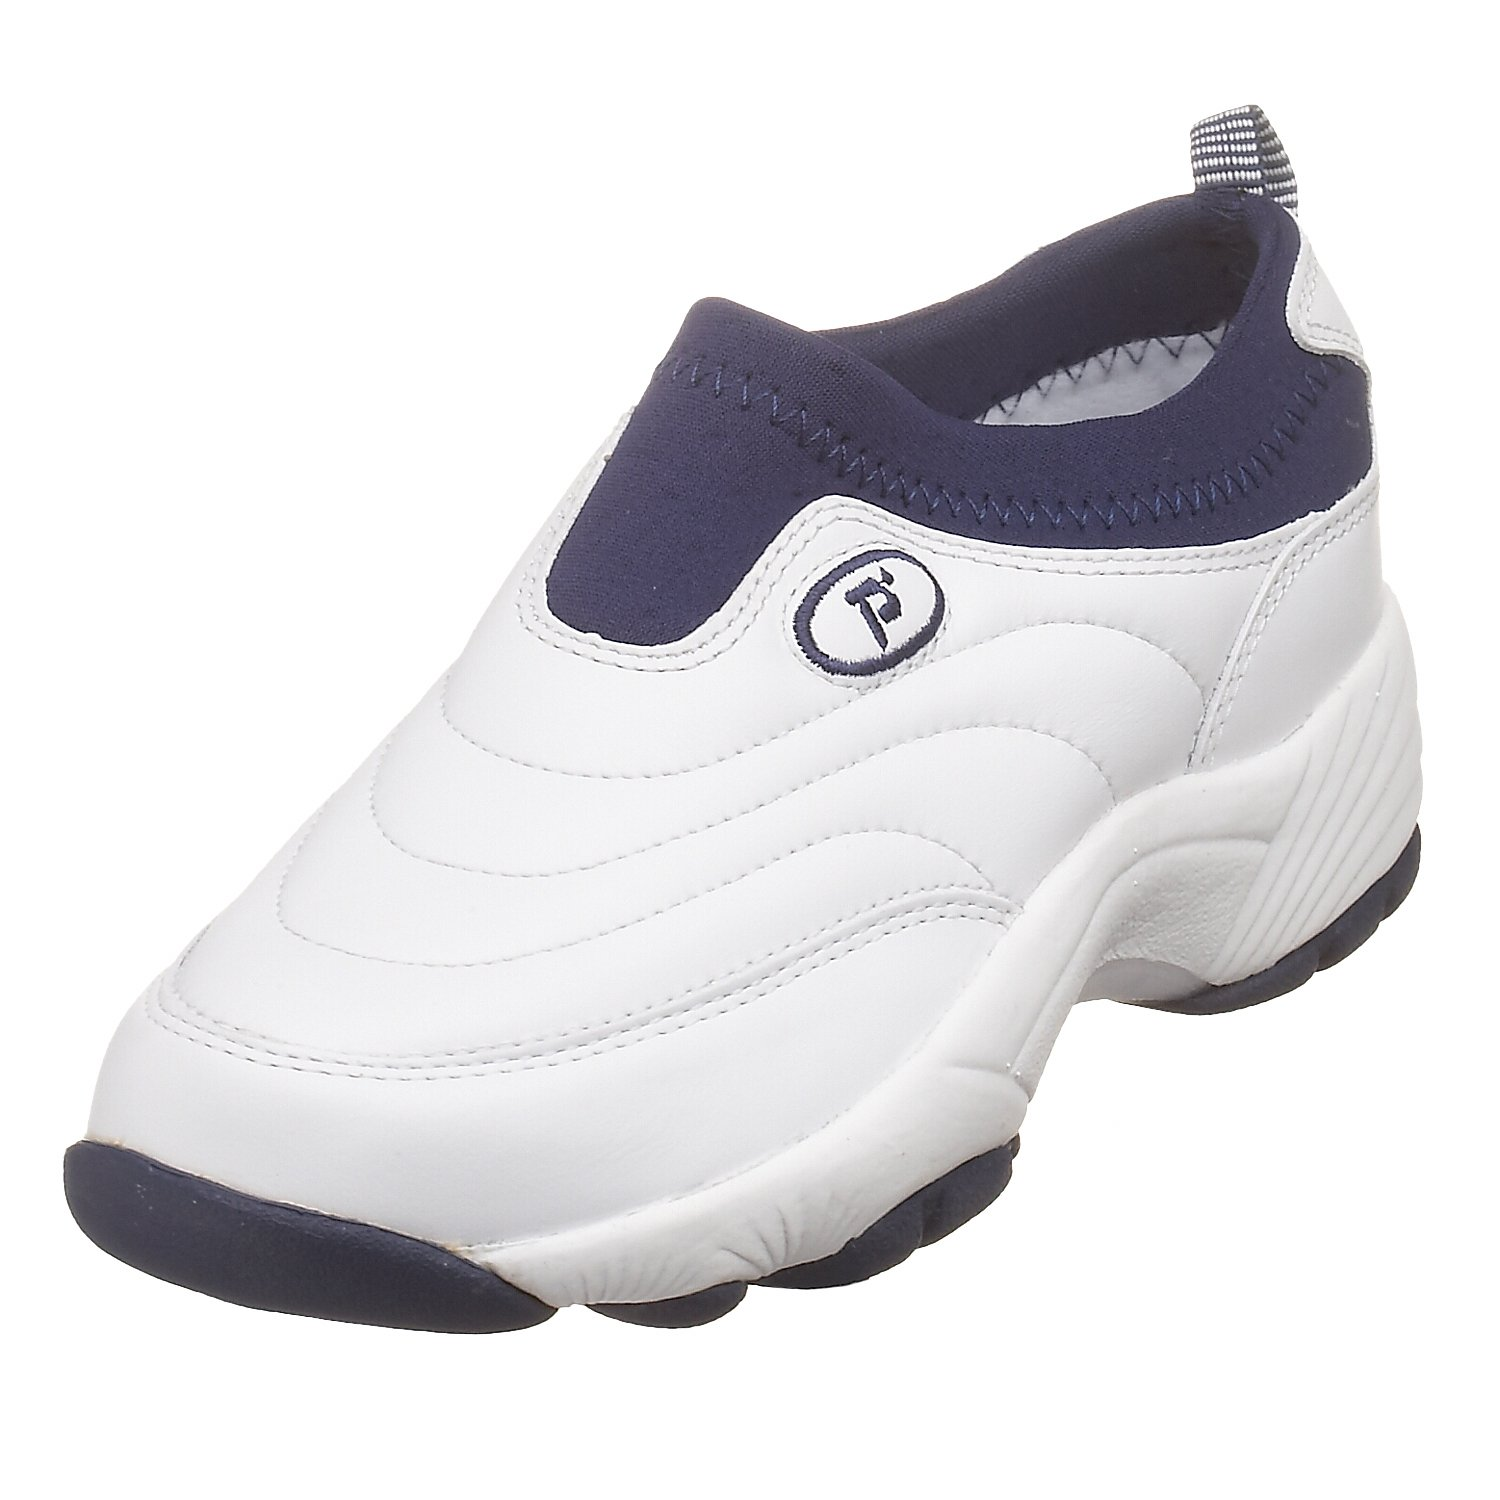 Propet Women's W3851 Wash & Wear Slip-On B000BO86VA 11 X (US Women's 11 EE)|White Navy